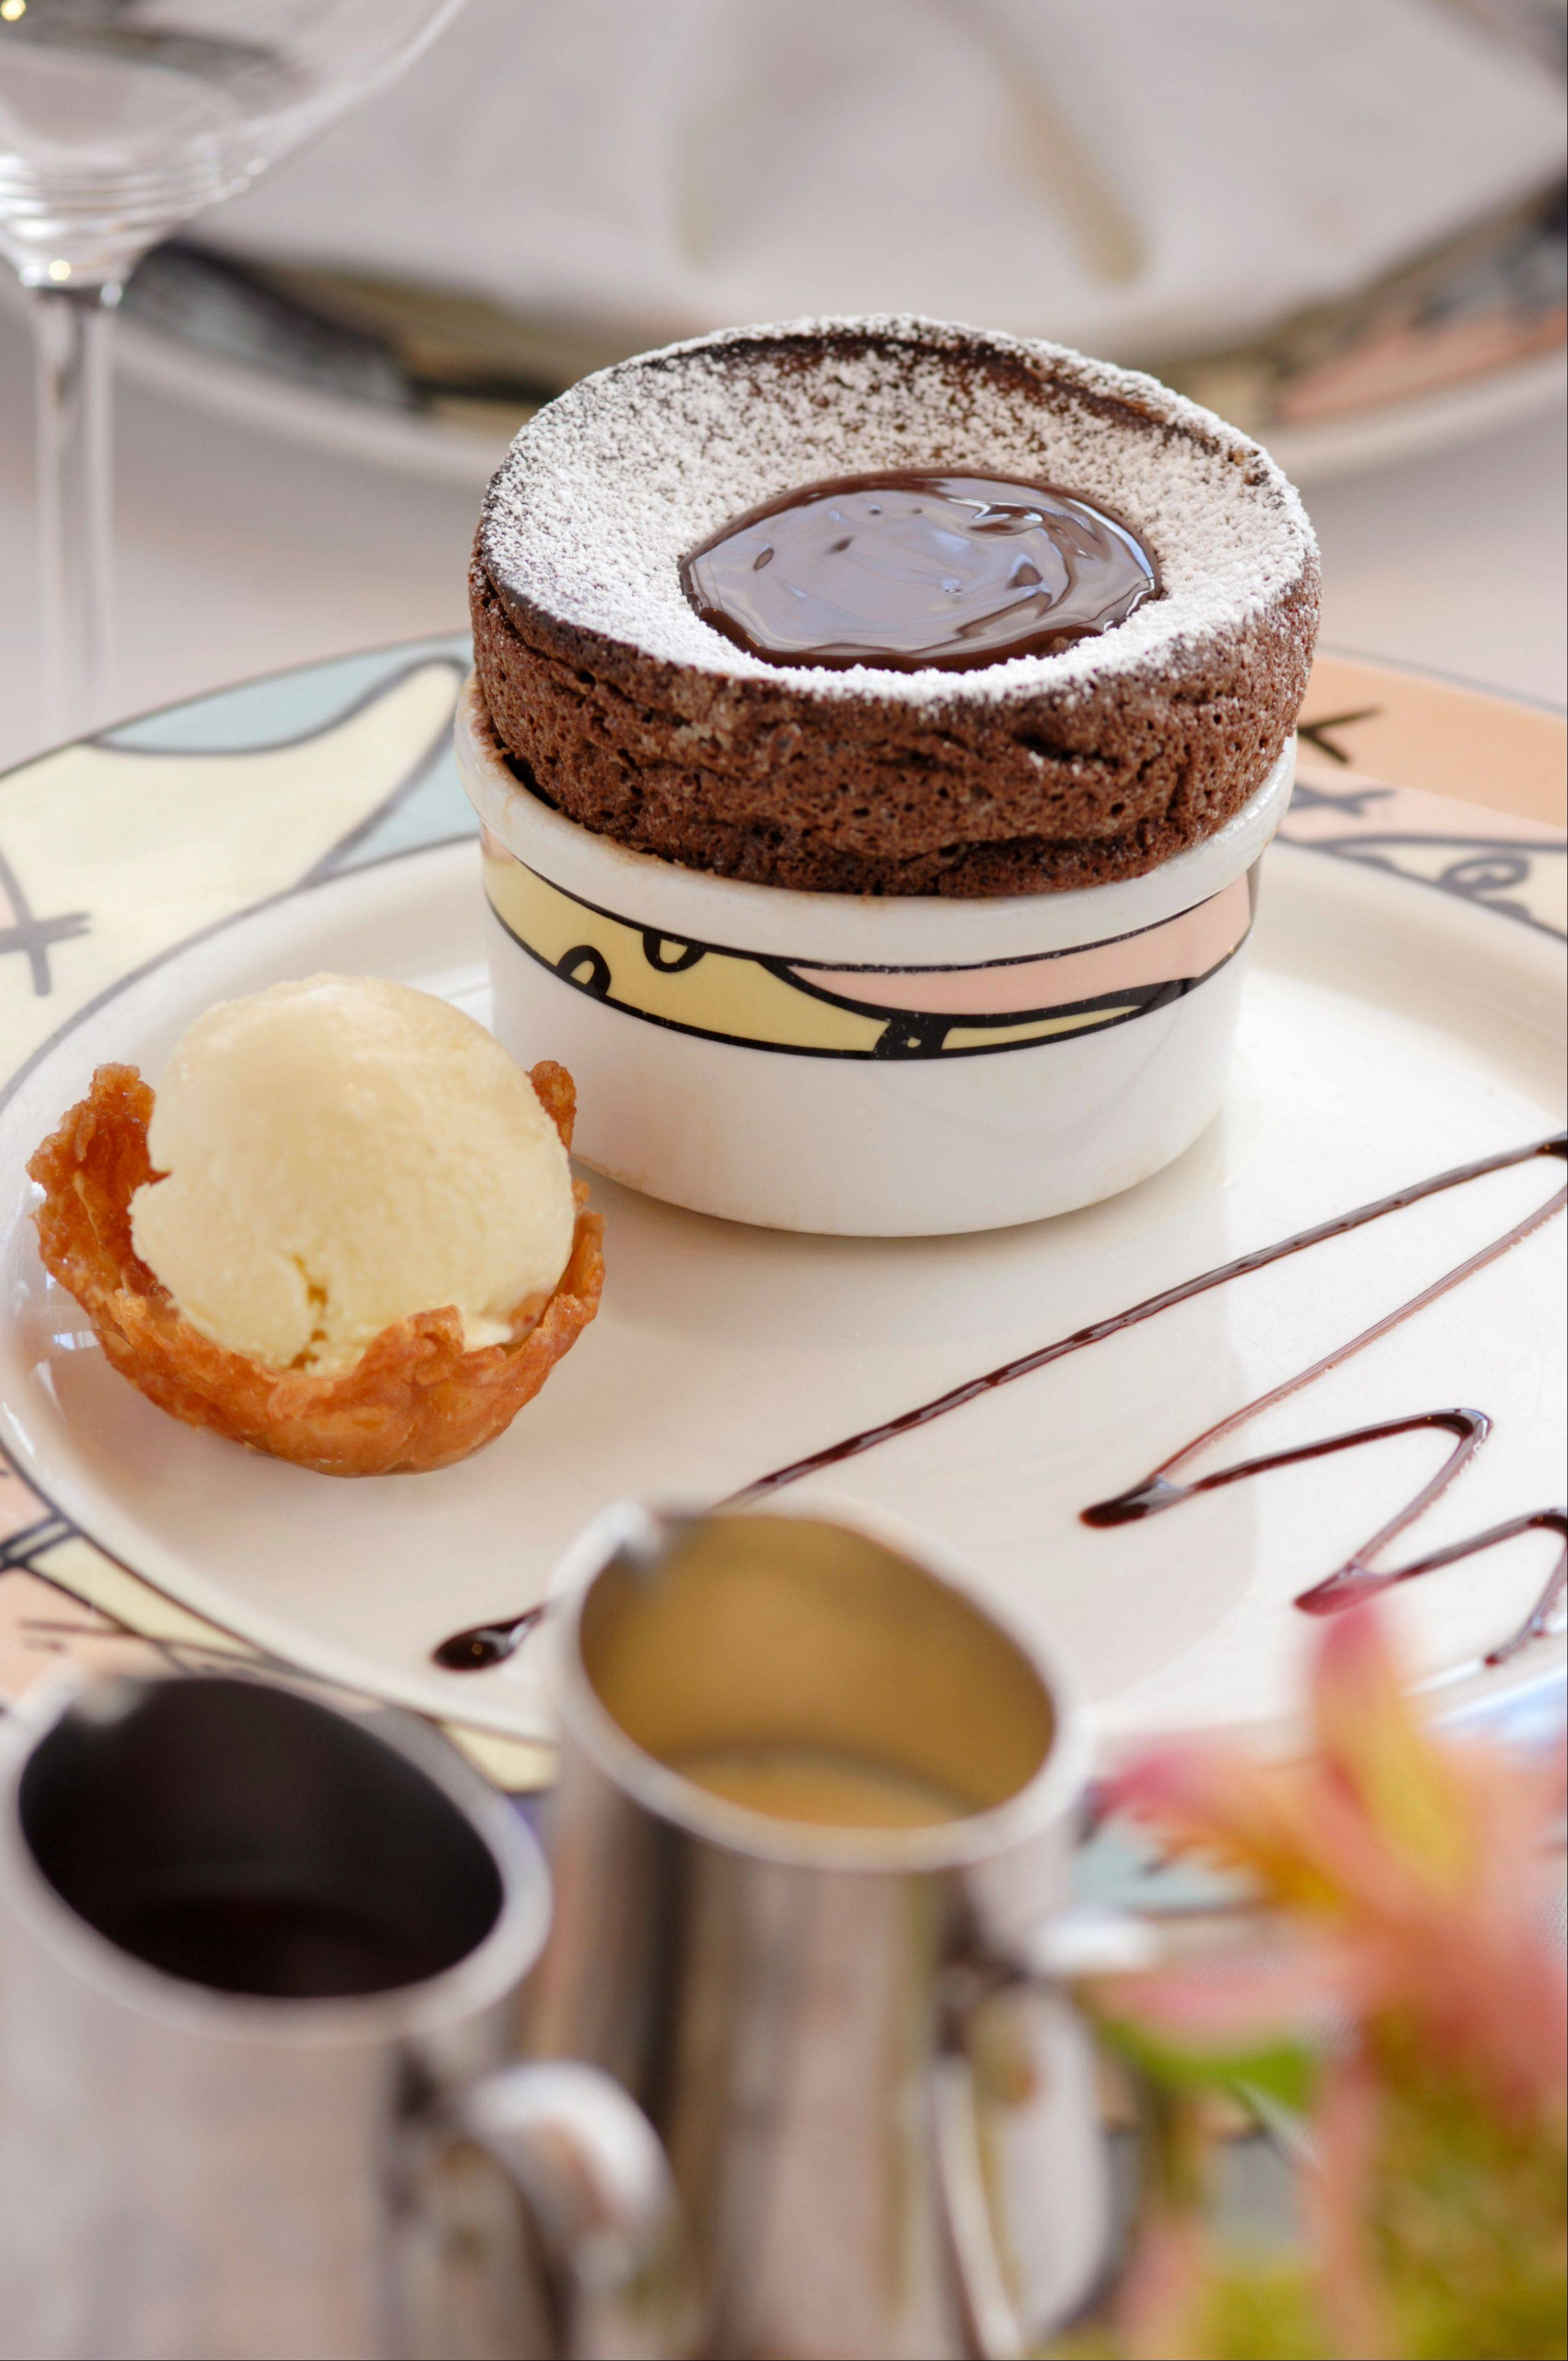 Chocolate souffle is a signature dessert at Palo restaurant aboard Disney Magic and it�s not that difficult to recreate at home.